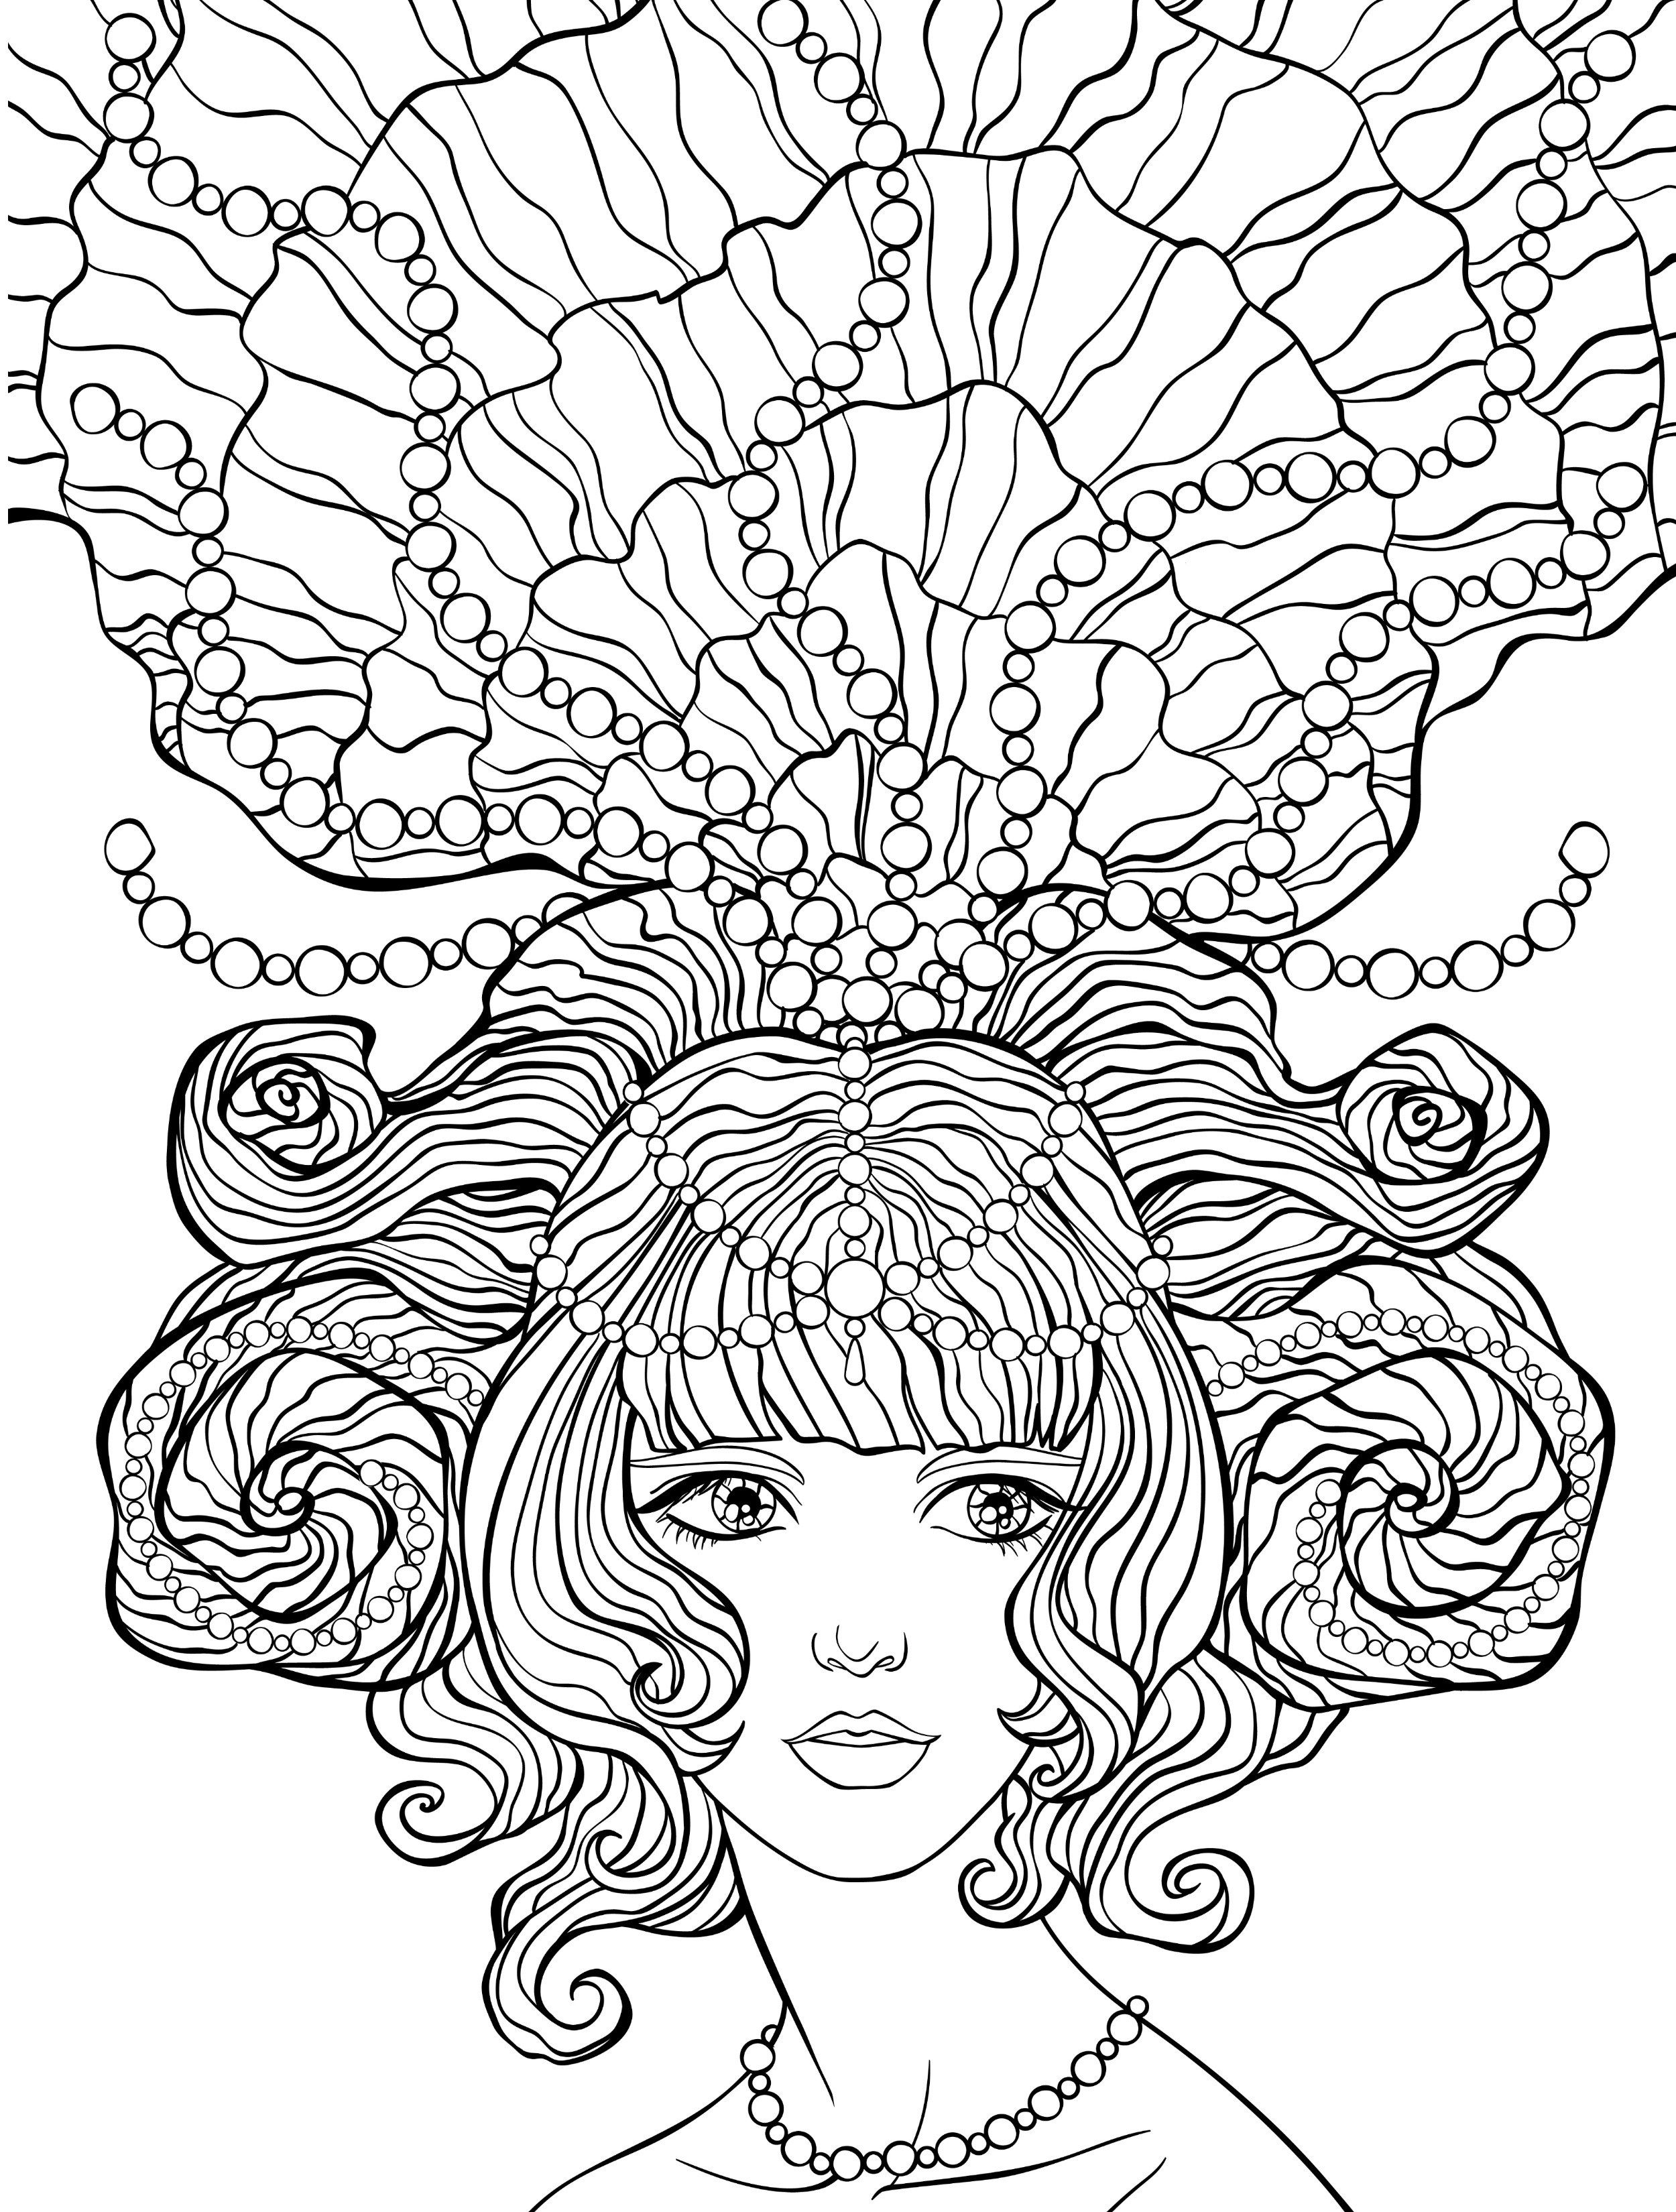 crazy coloring pages for adults - 10 crazy hair adult coloring pages coloring pages